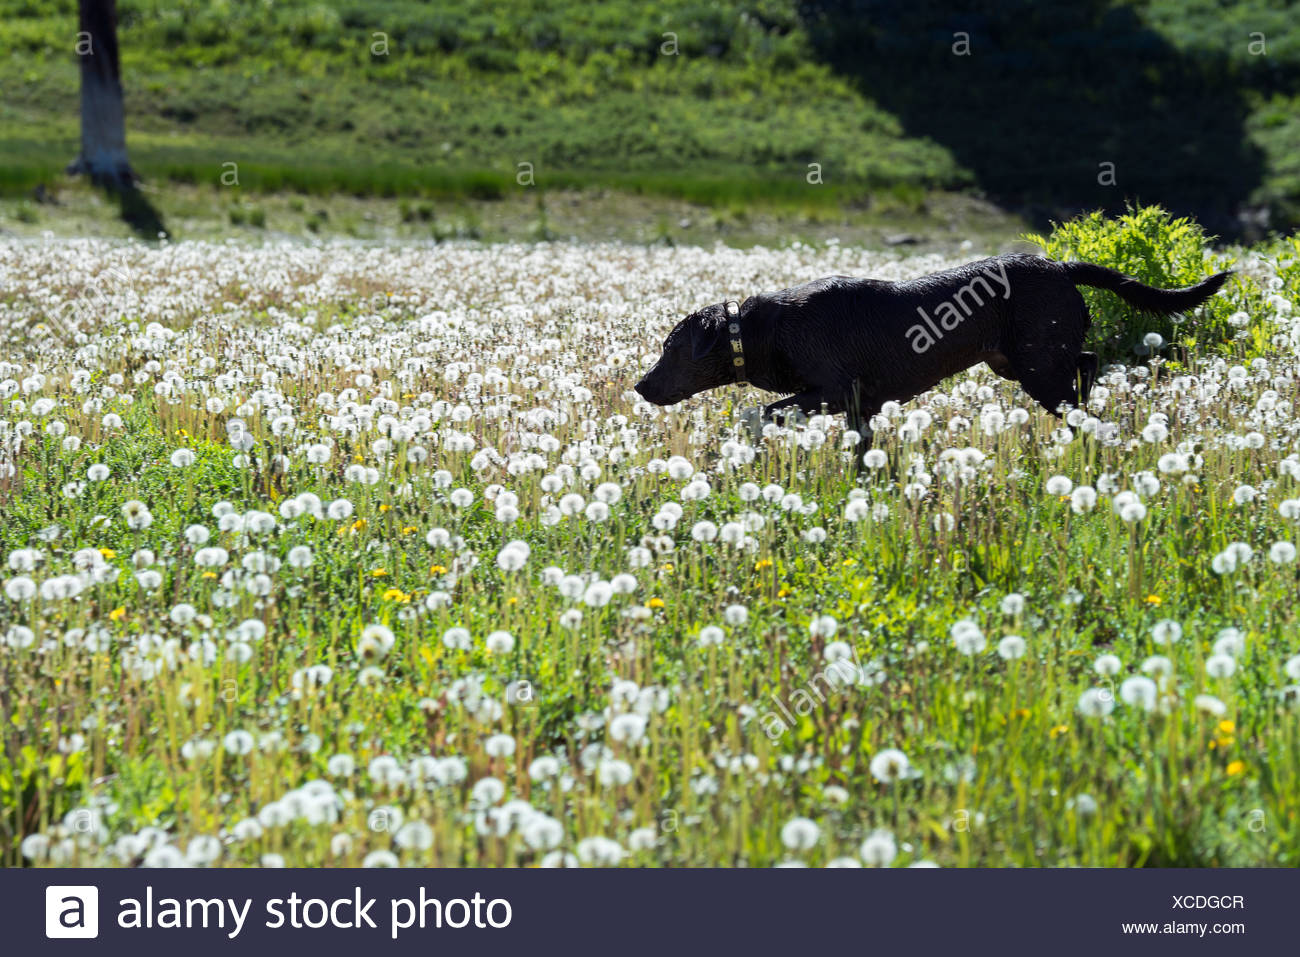 A black labrador dog in tall meadow grass. - Stock Image